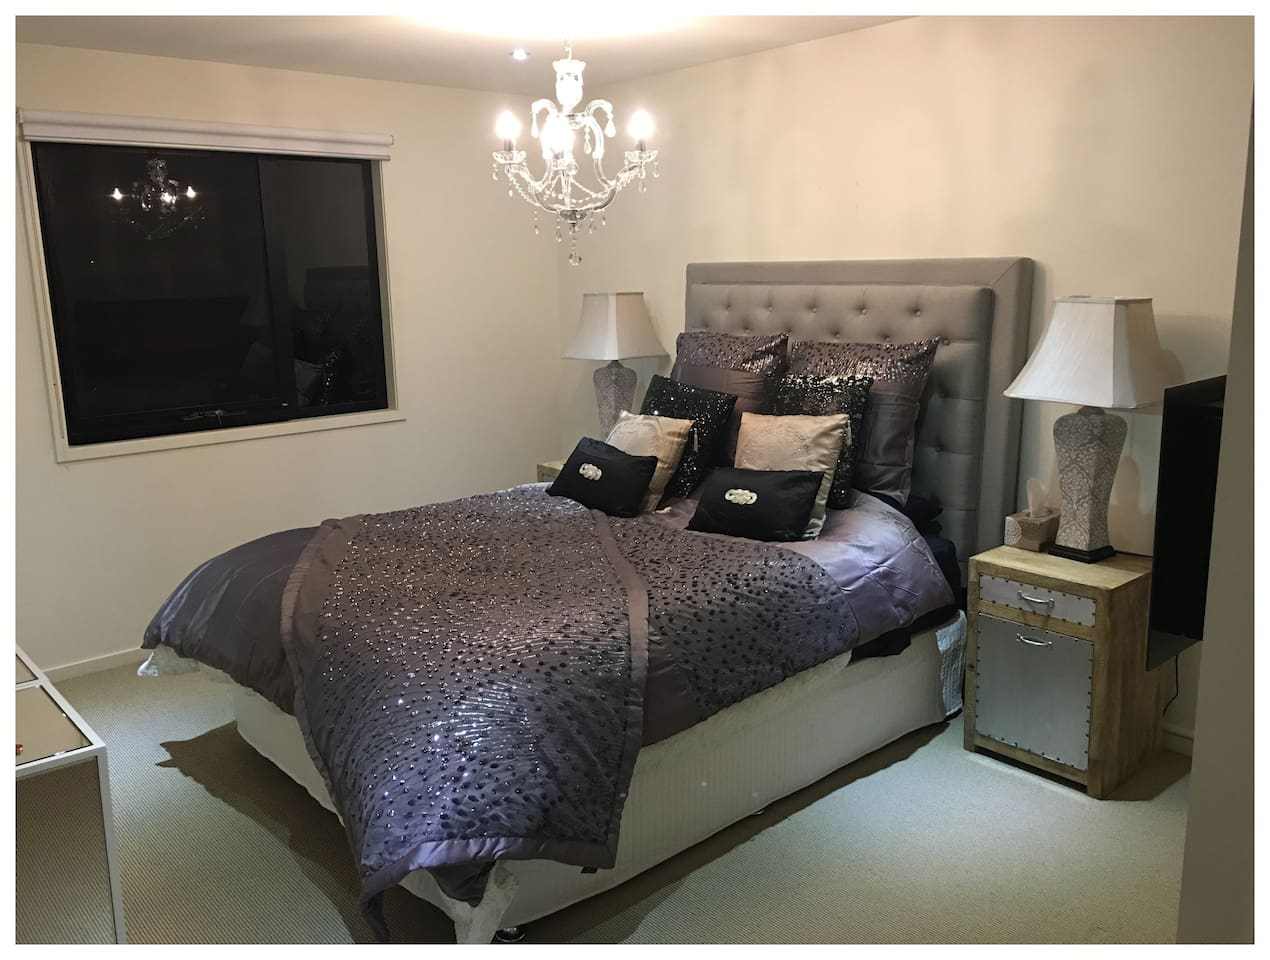 Master Bedroom styled with Kylie Minogue bedding and electric fireplace